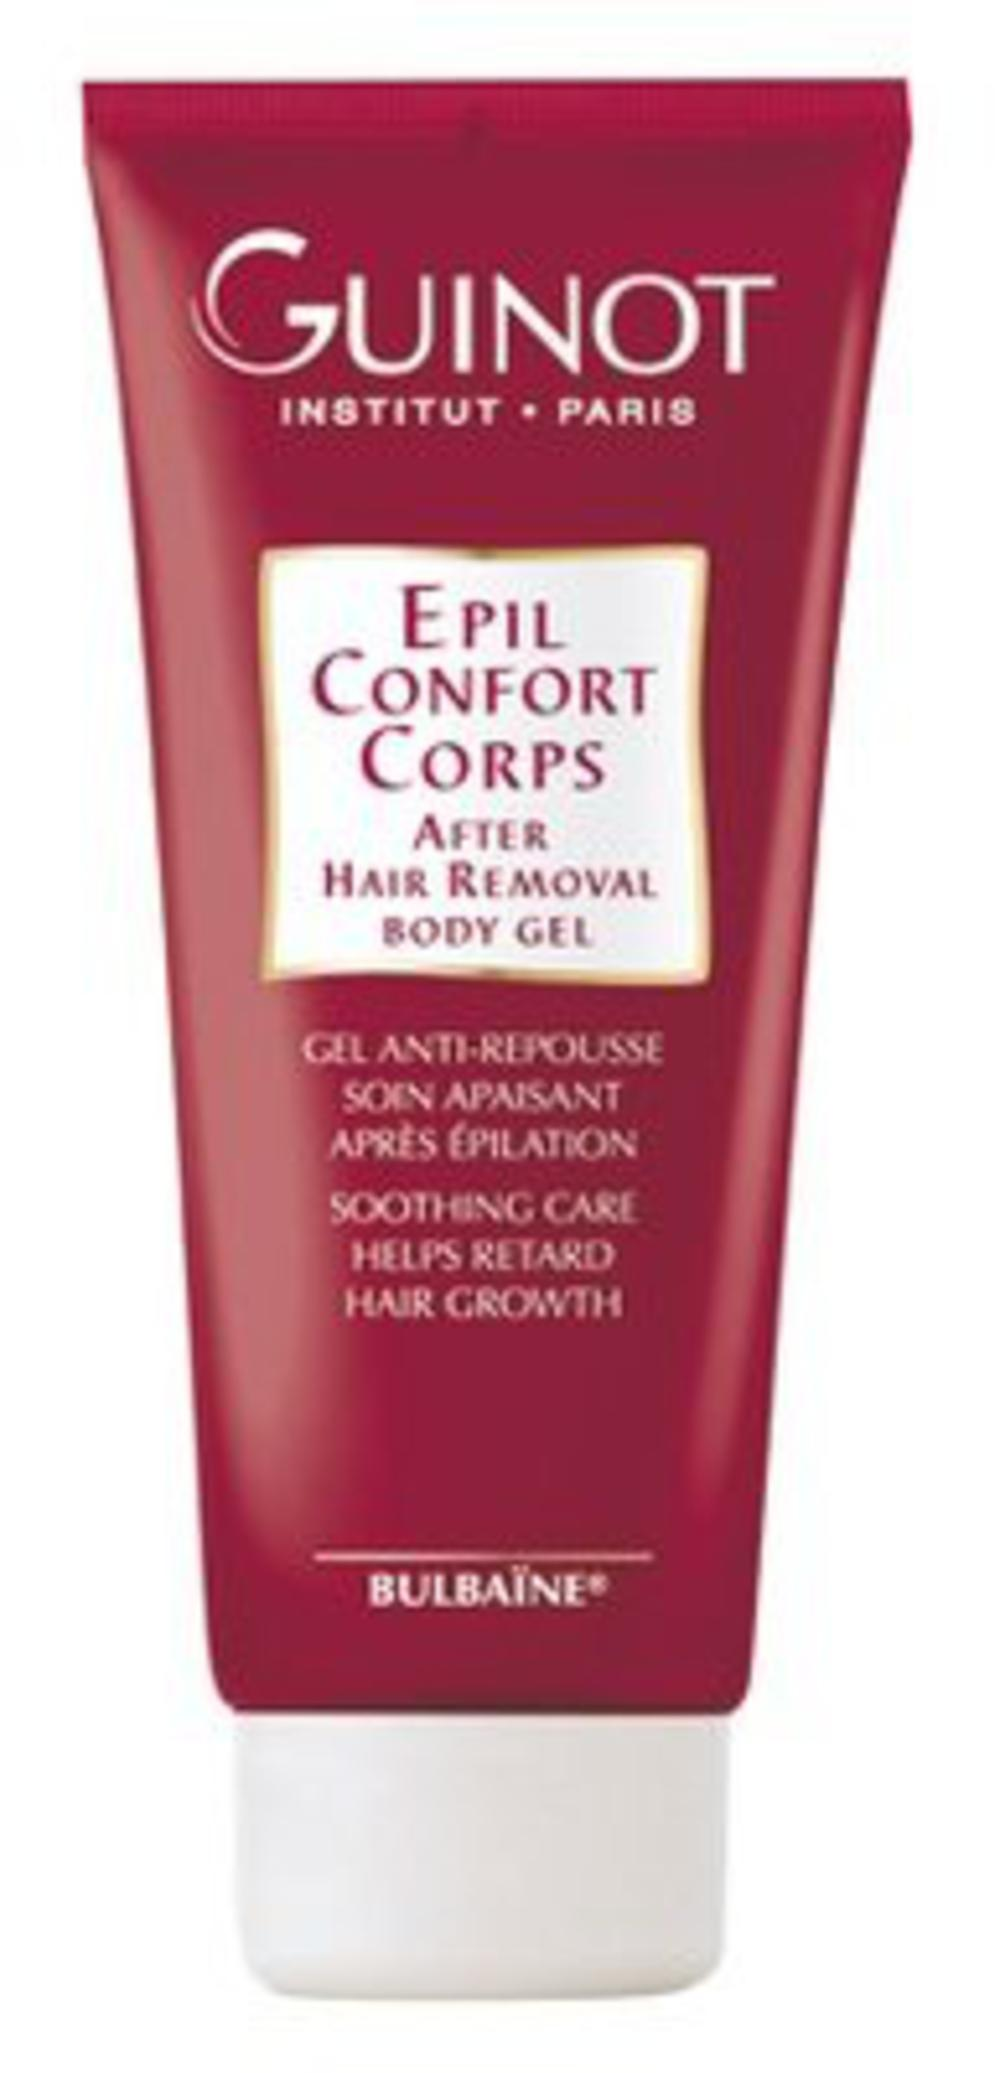 Image result for 'Epil Confort Corps - After Hair Removal Body Gel